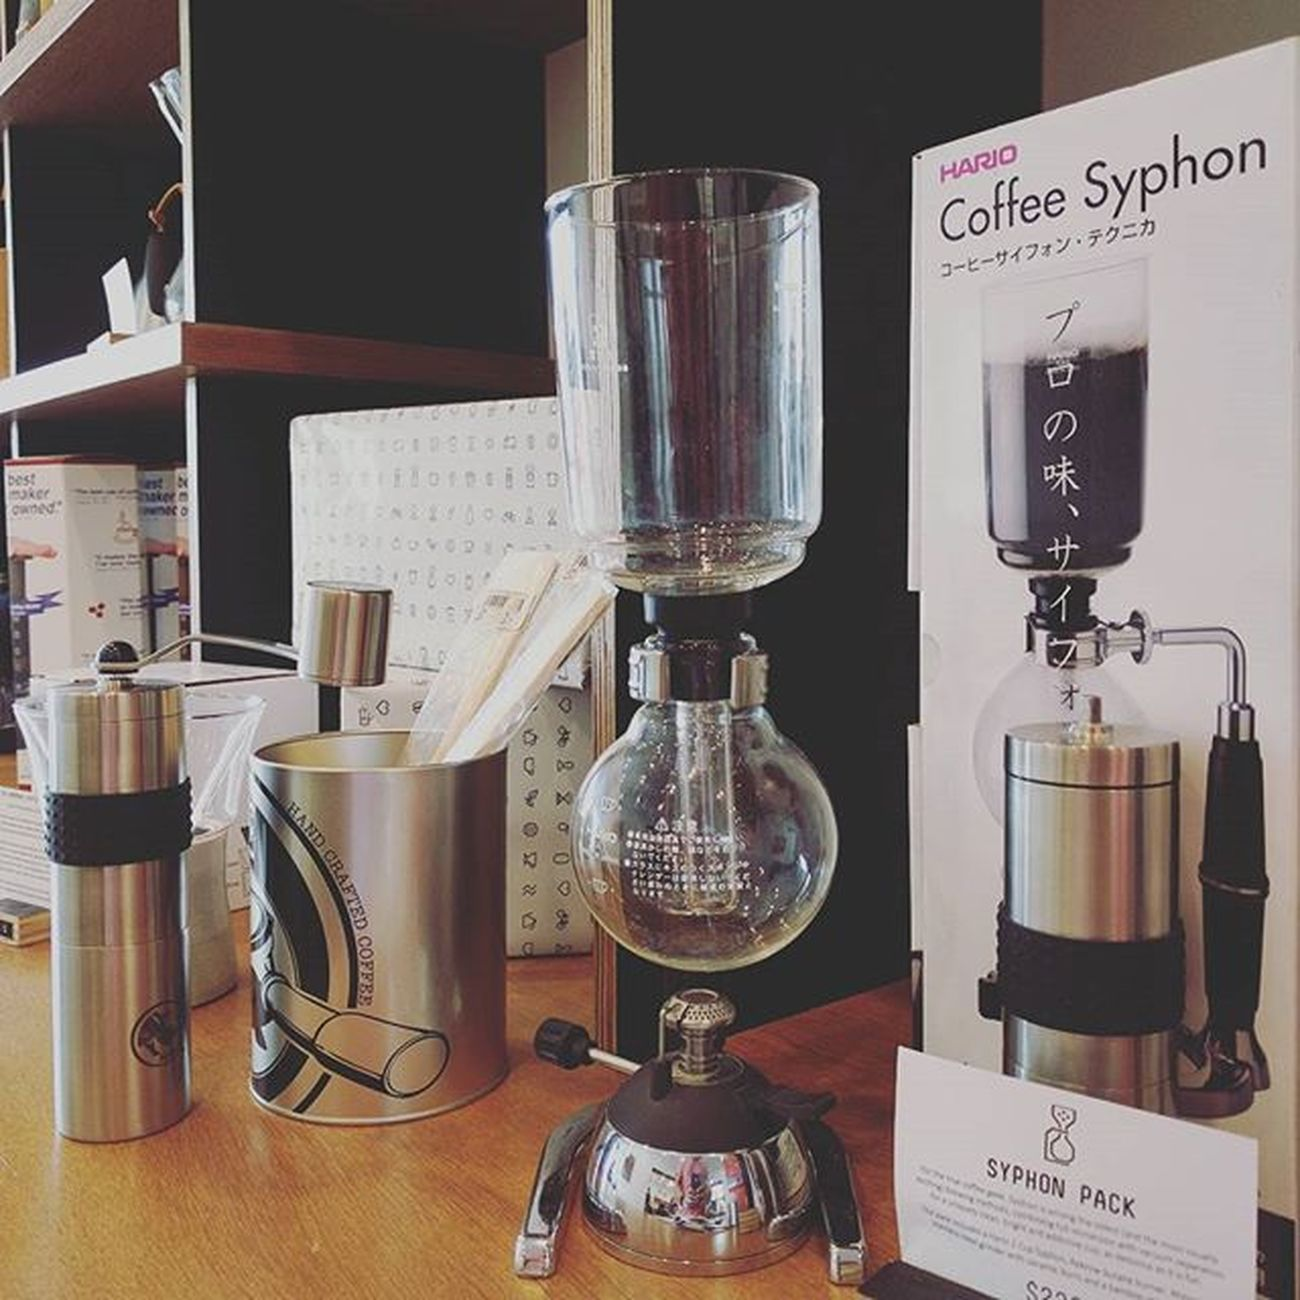 Coffee Padres Bean Beans Coffeebean Coffeebeans Coffeetime Coffeeshop Cafe Cappuccino Espresso Latte Espressoshot Espressoshots Coffeeblend Coffeeblends Plunger Plungers Filtercoffee Syphoncoffee Syphon Coffeesyphon